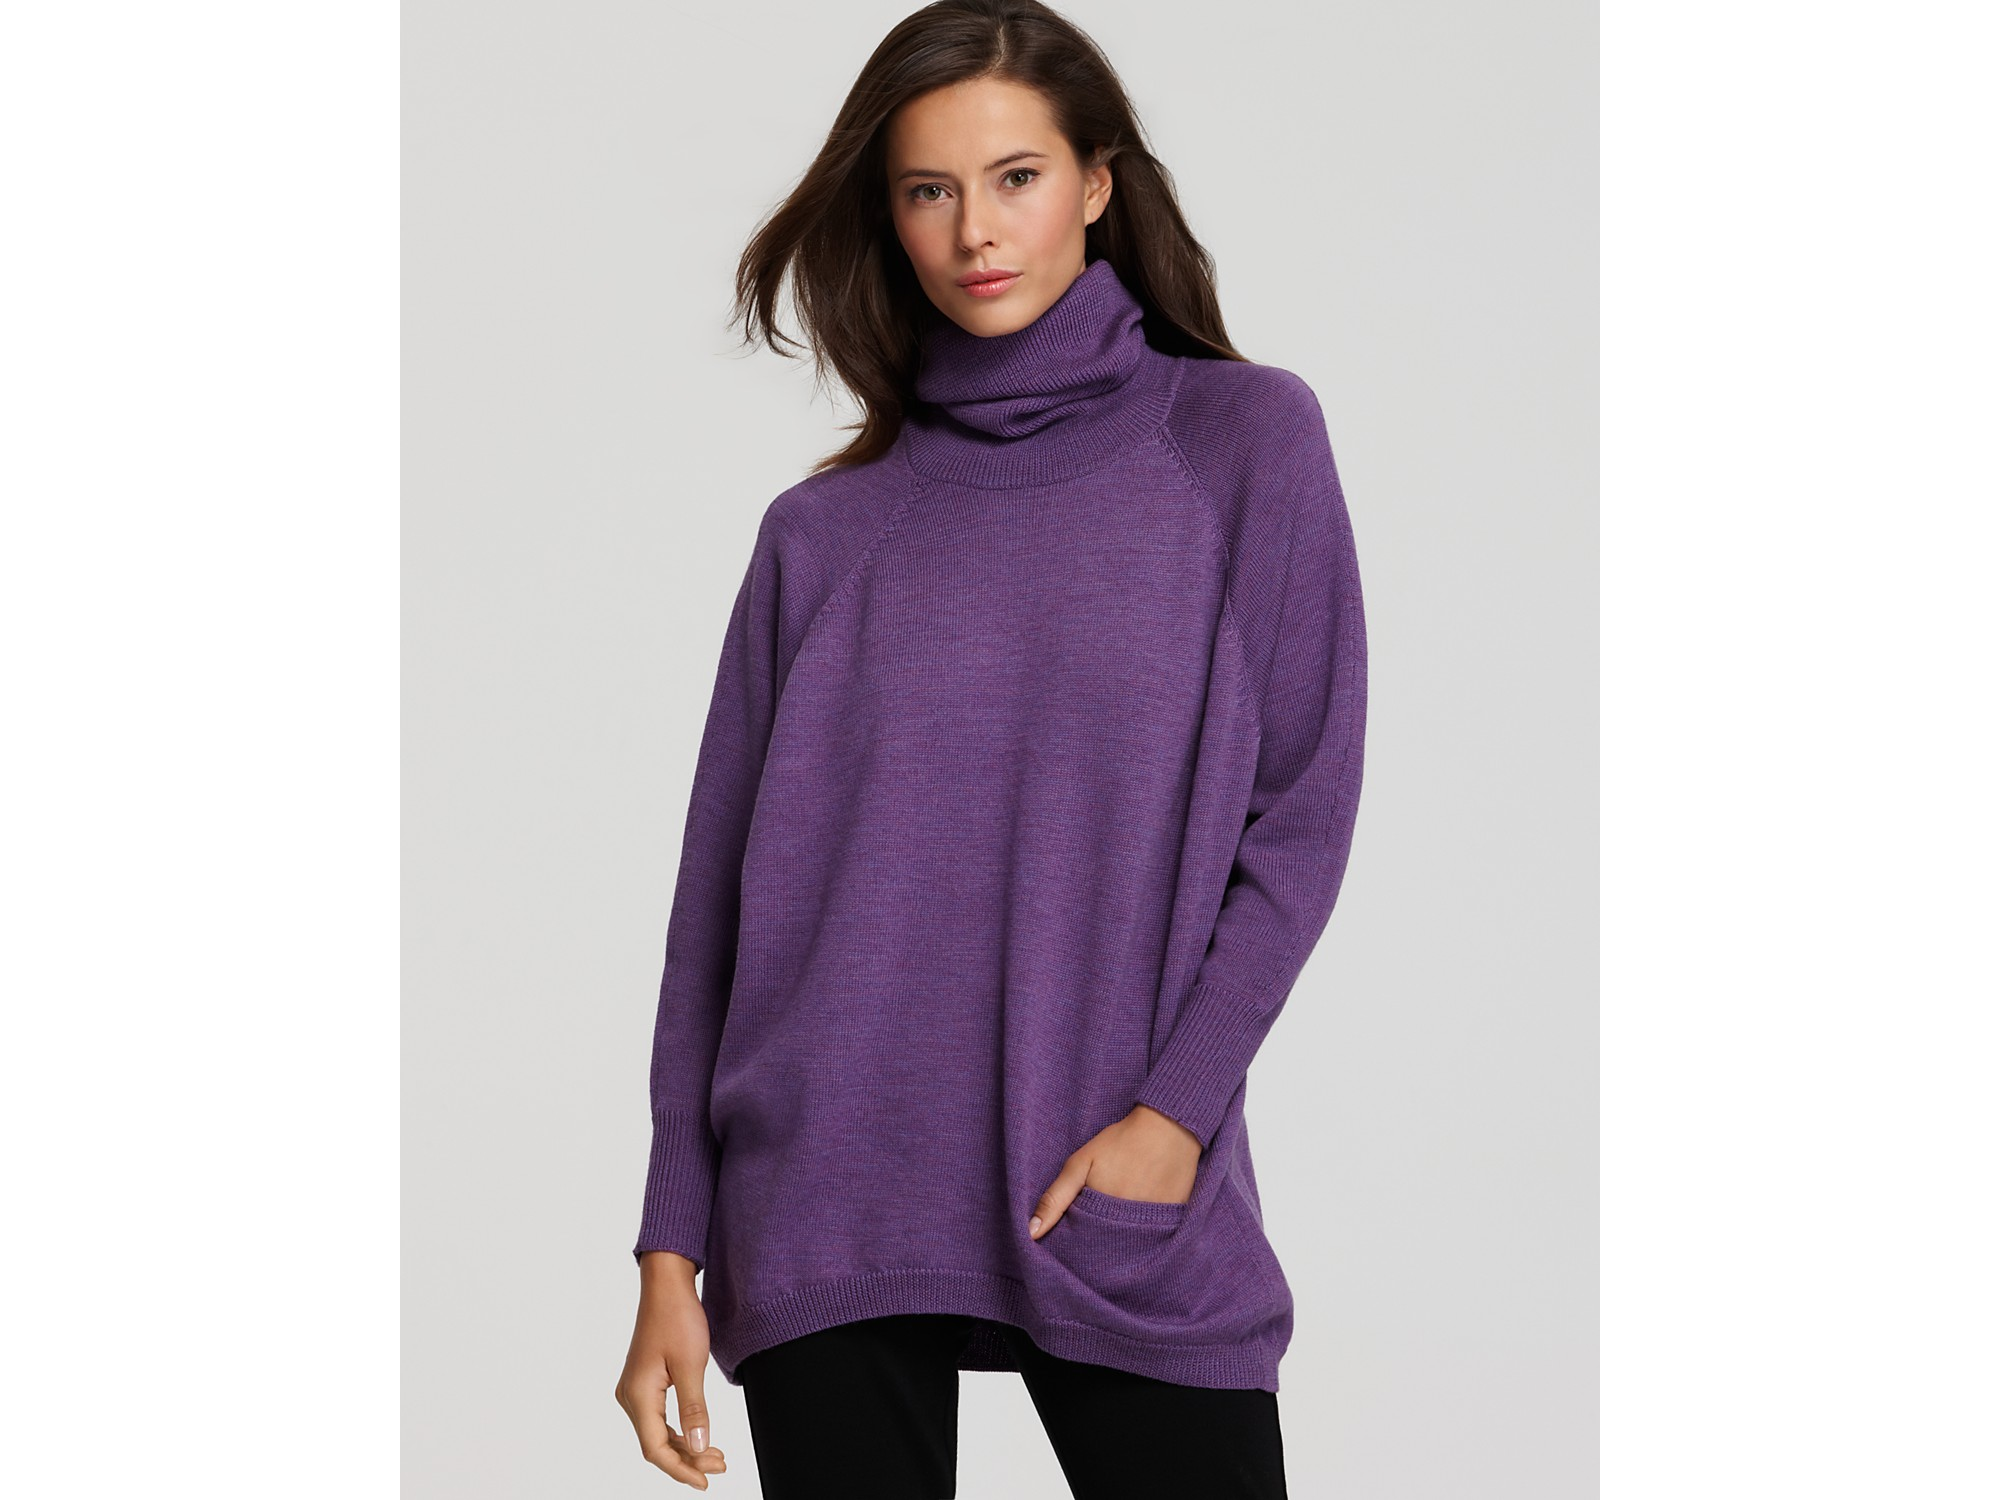 Eileen fisher Long Sleeve Turtleneck Tunic Sweater in Gray | Lyst